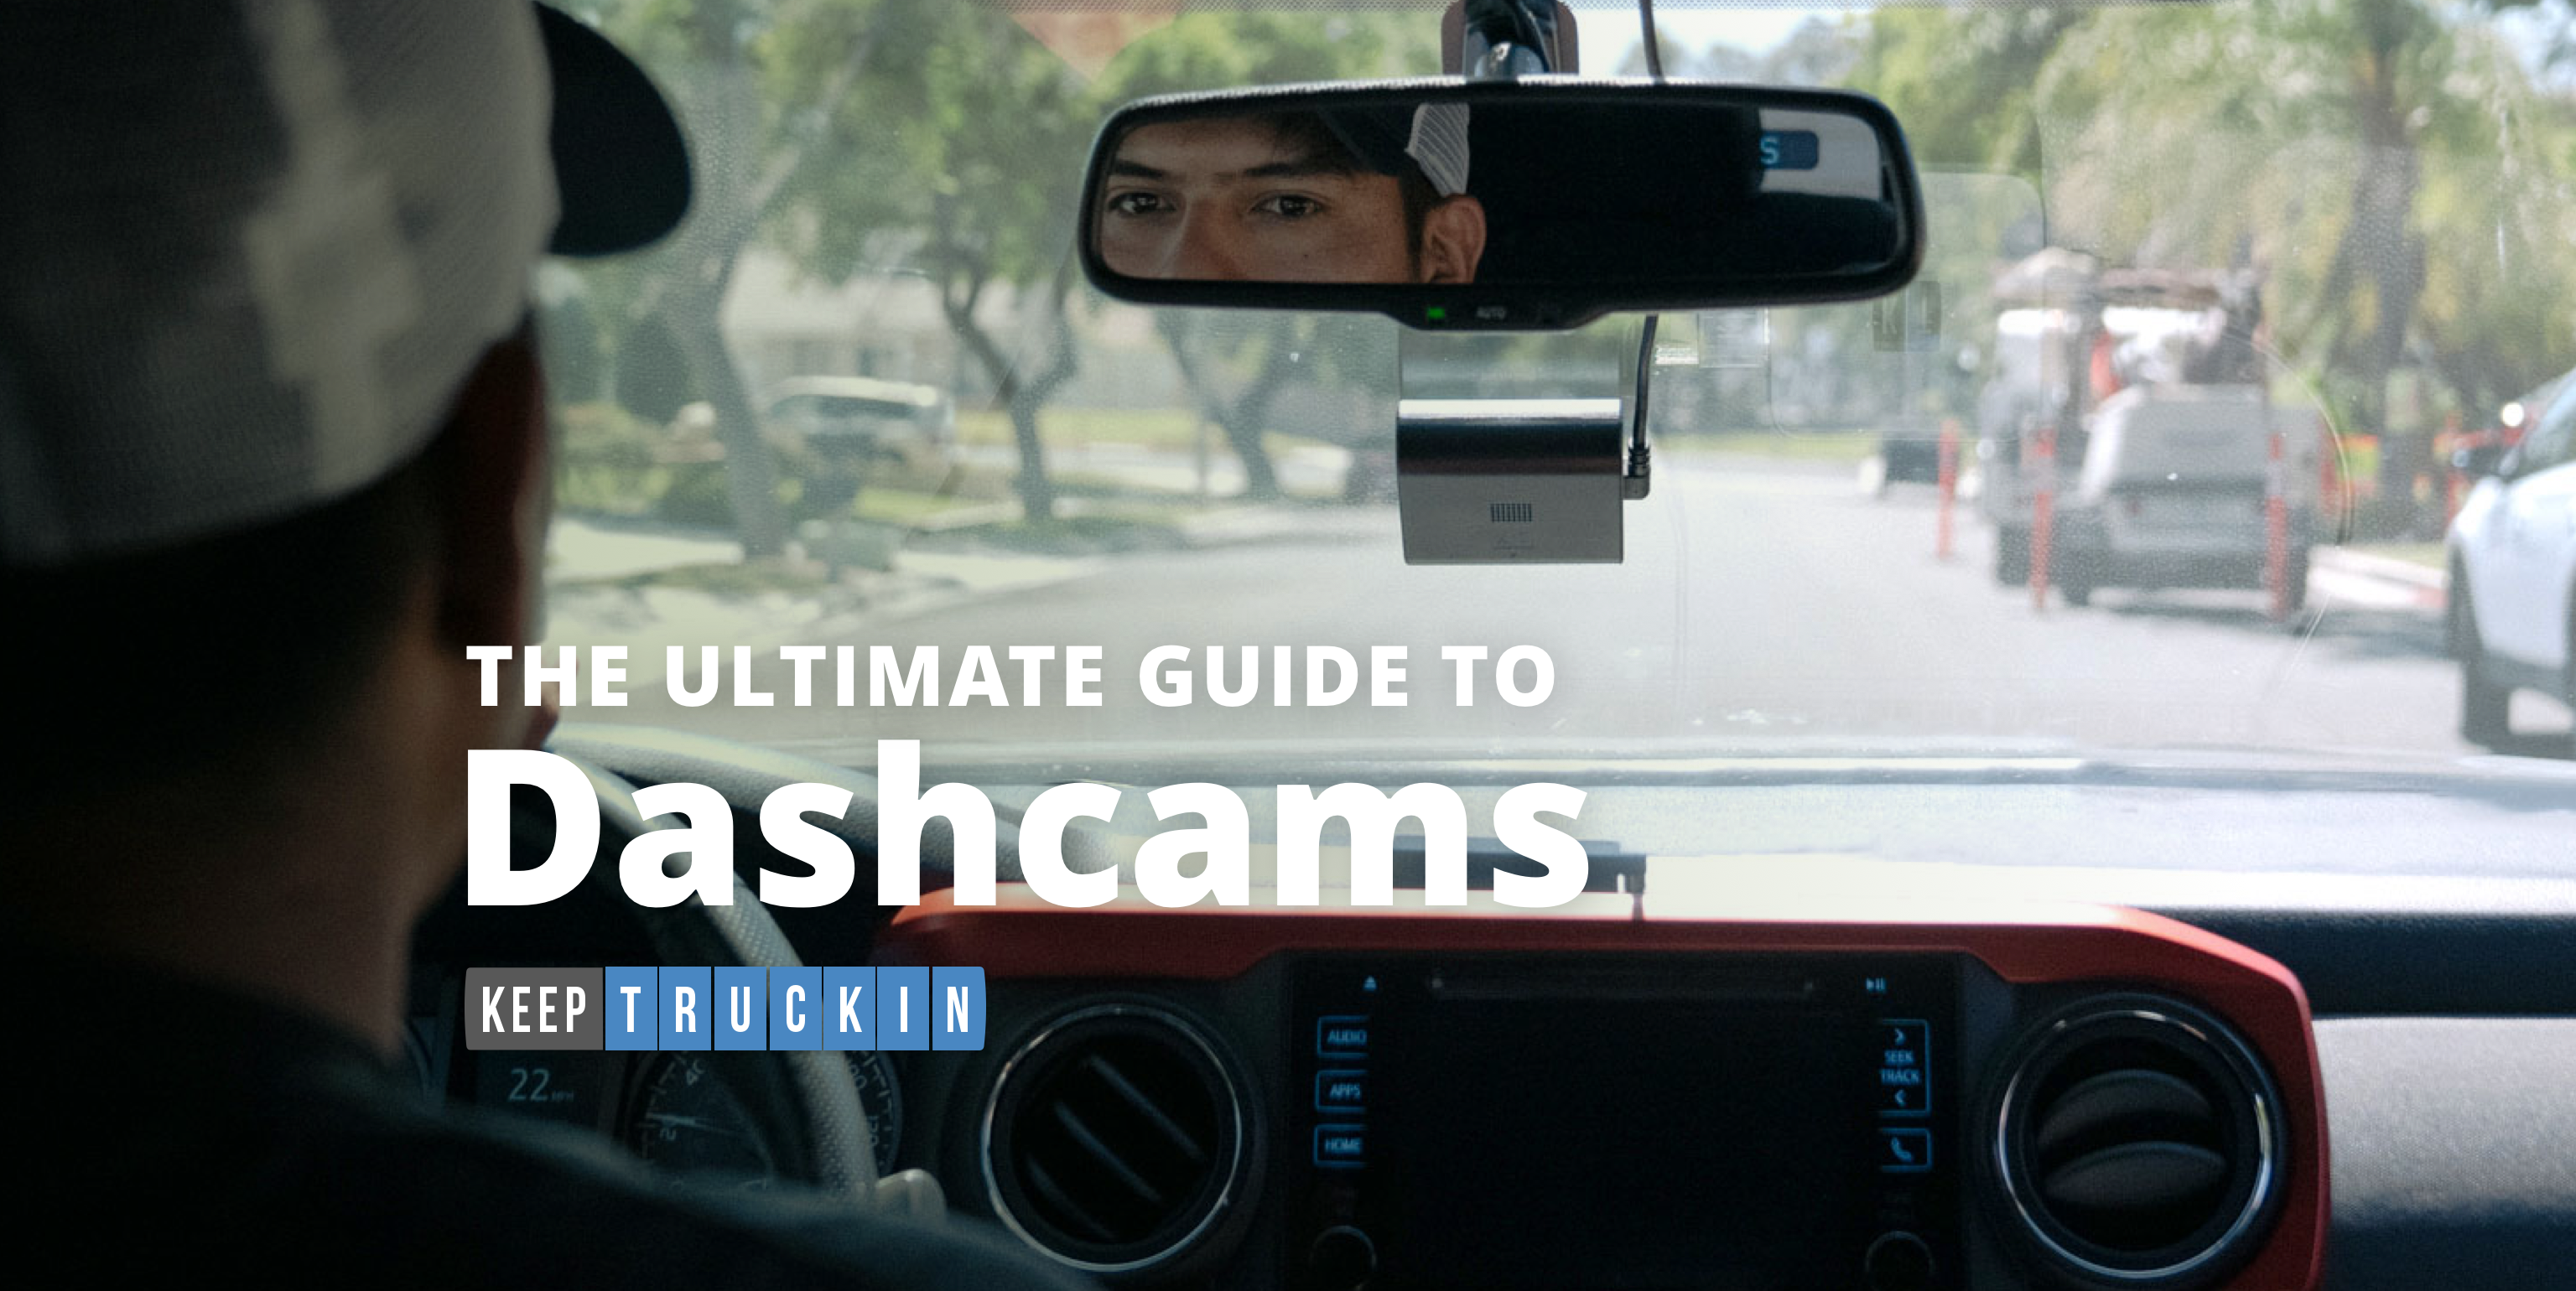 The ultimate guide to dash cams